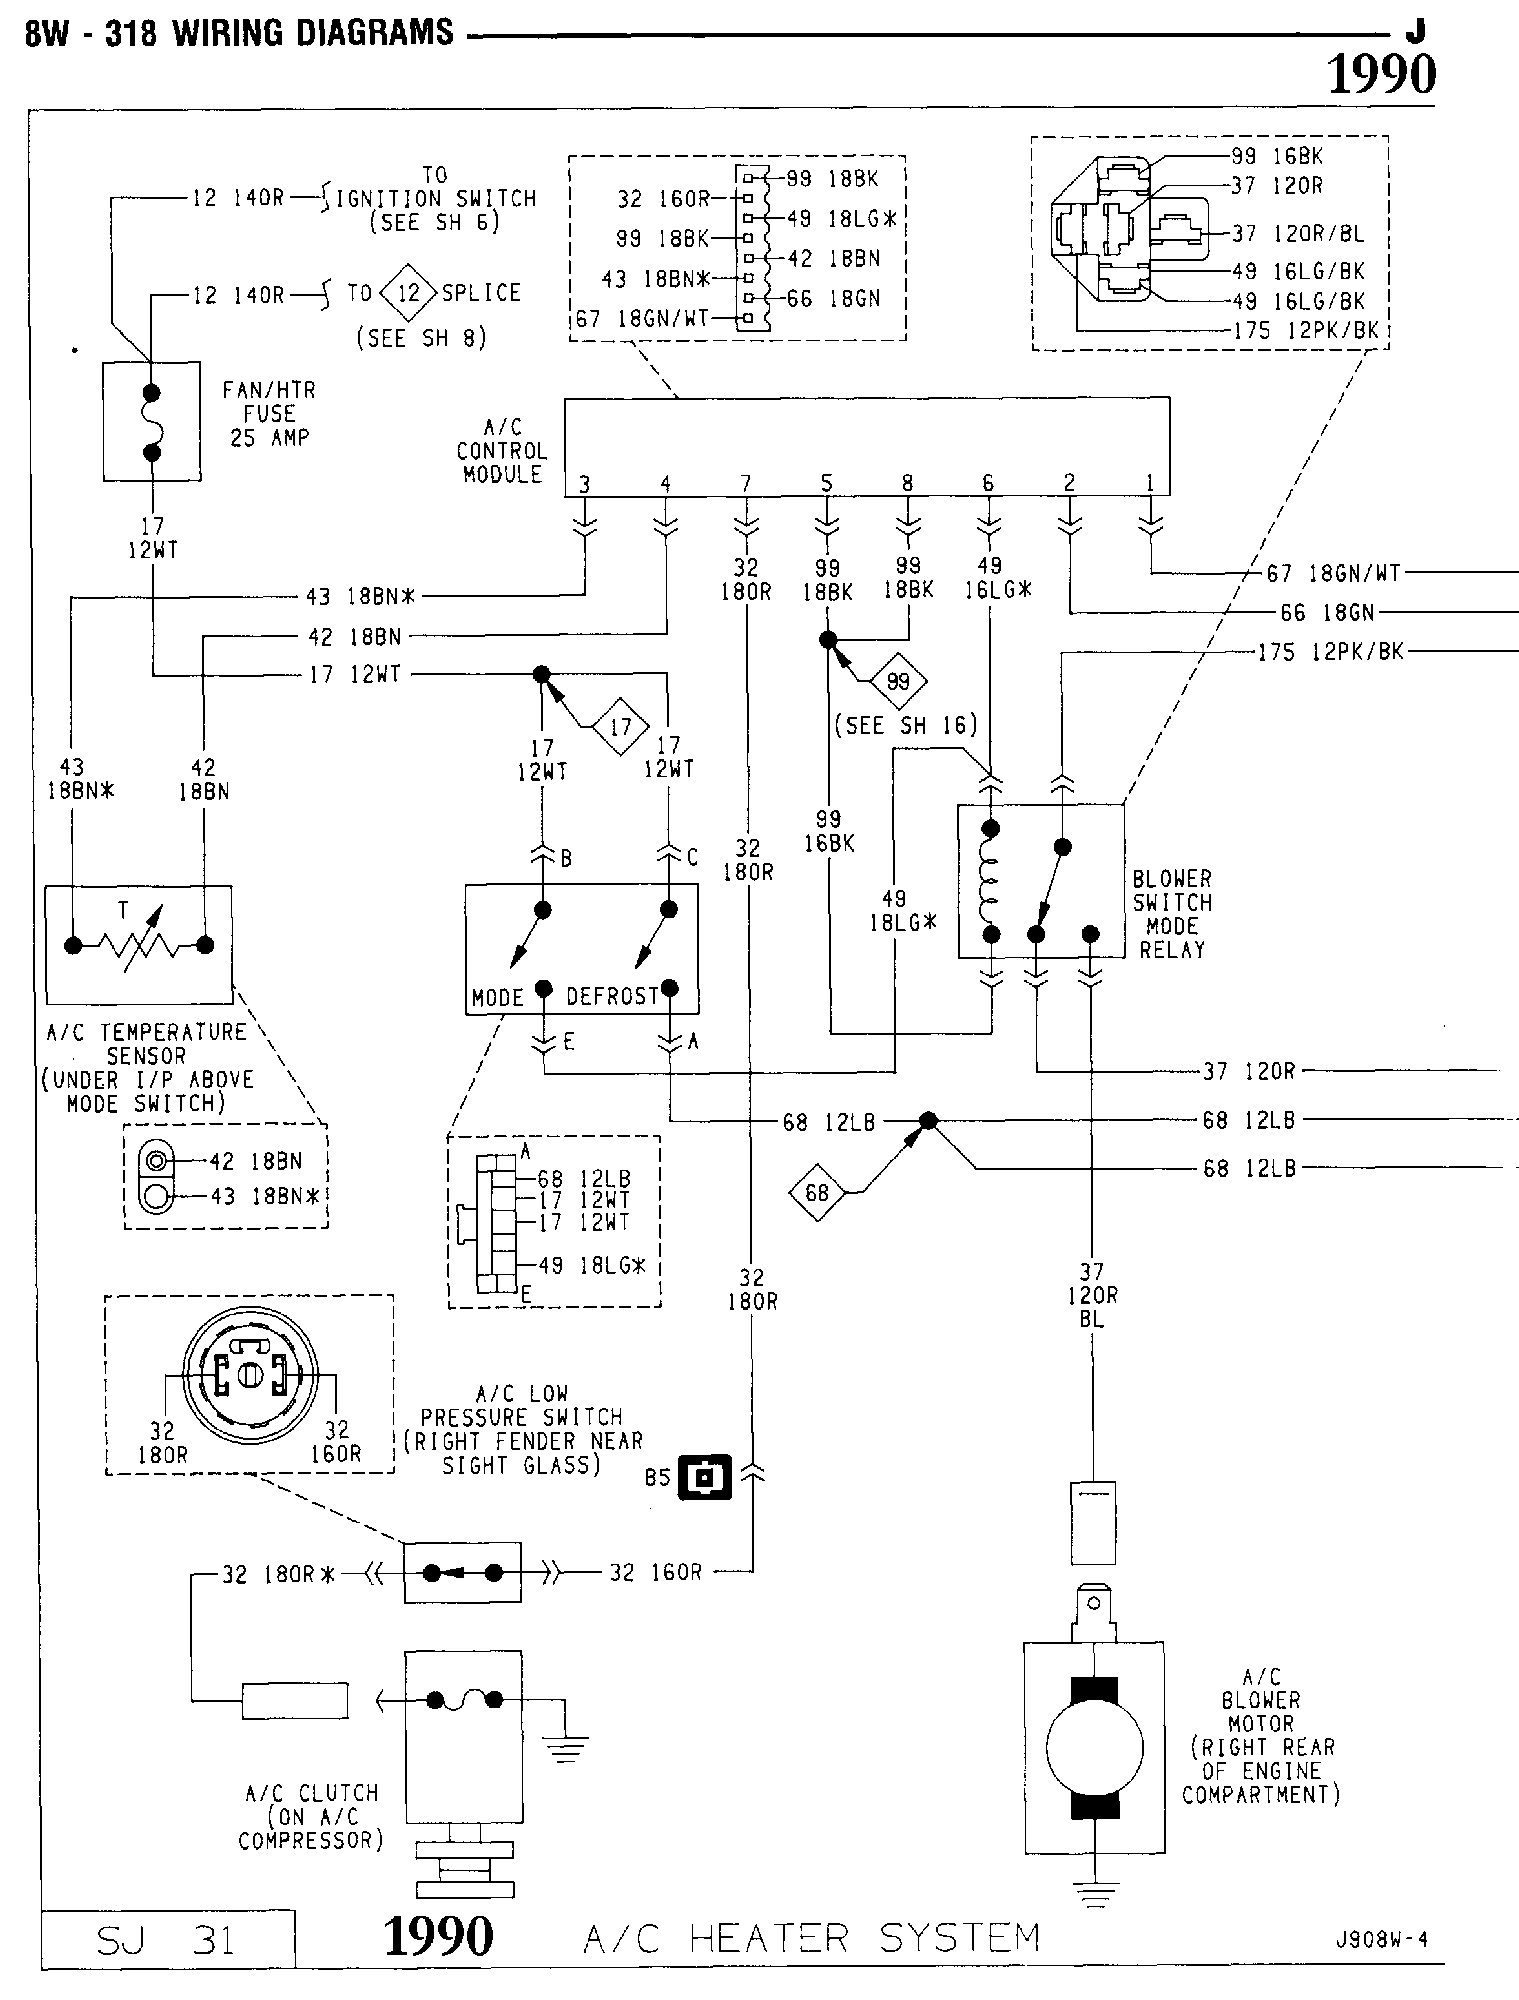 1990 Jeep Wrangler Starting System Wiring Diagram Tom Oljeep Collins Fsj Page A C Heater 1 Of 2